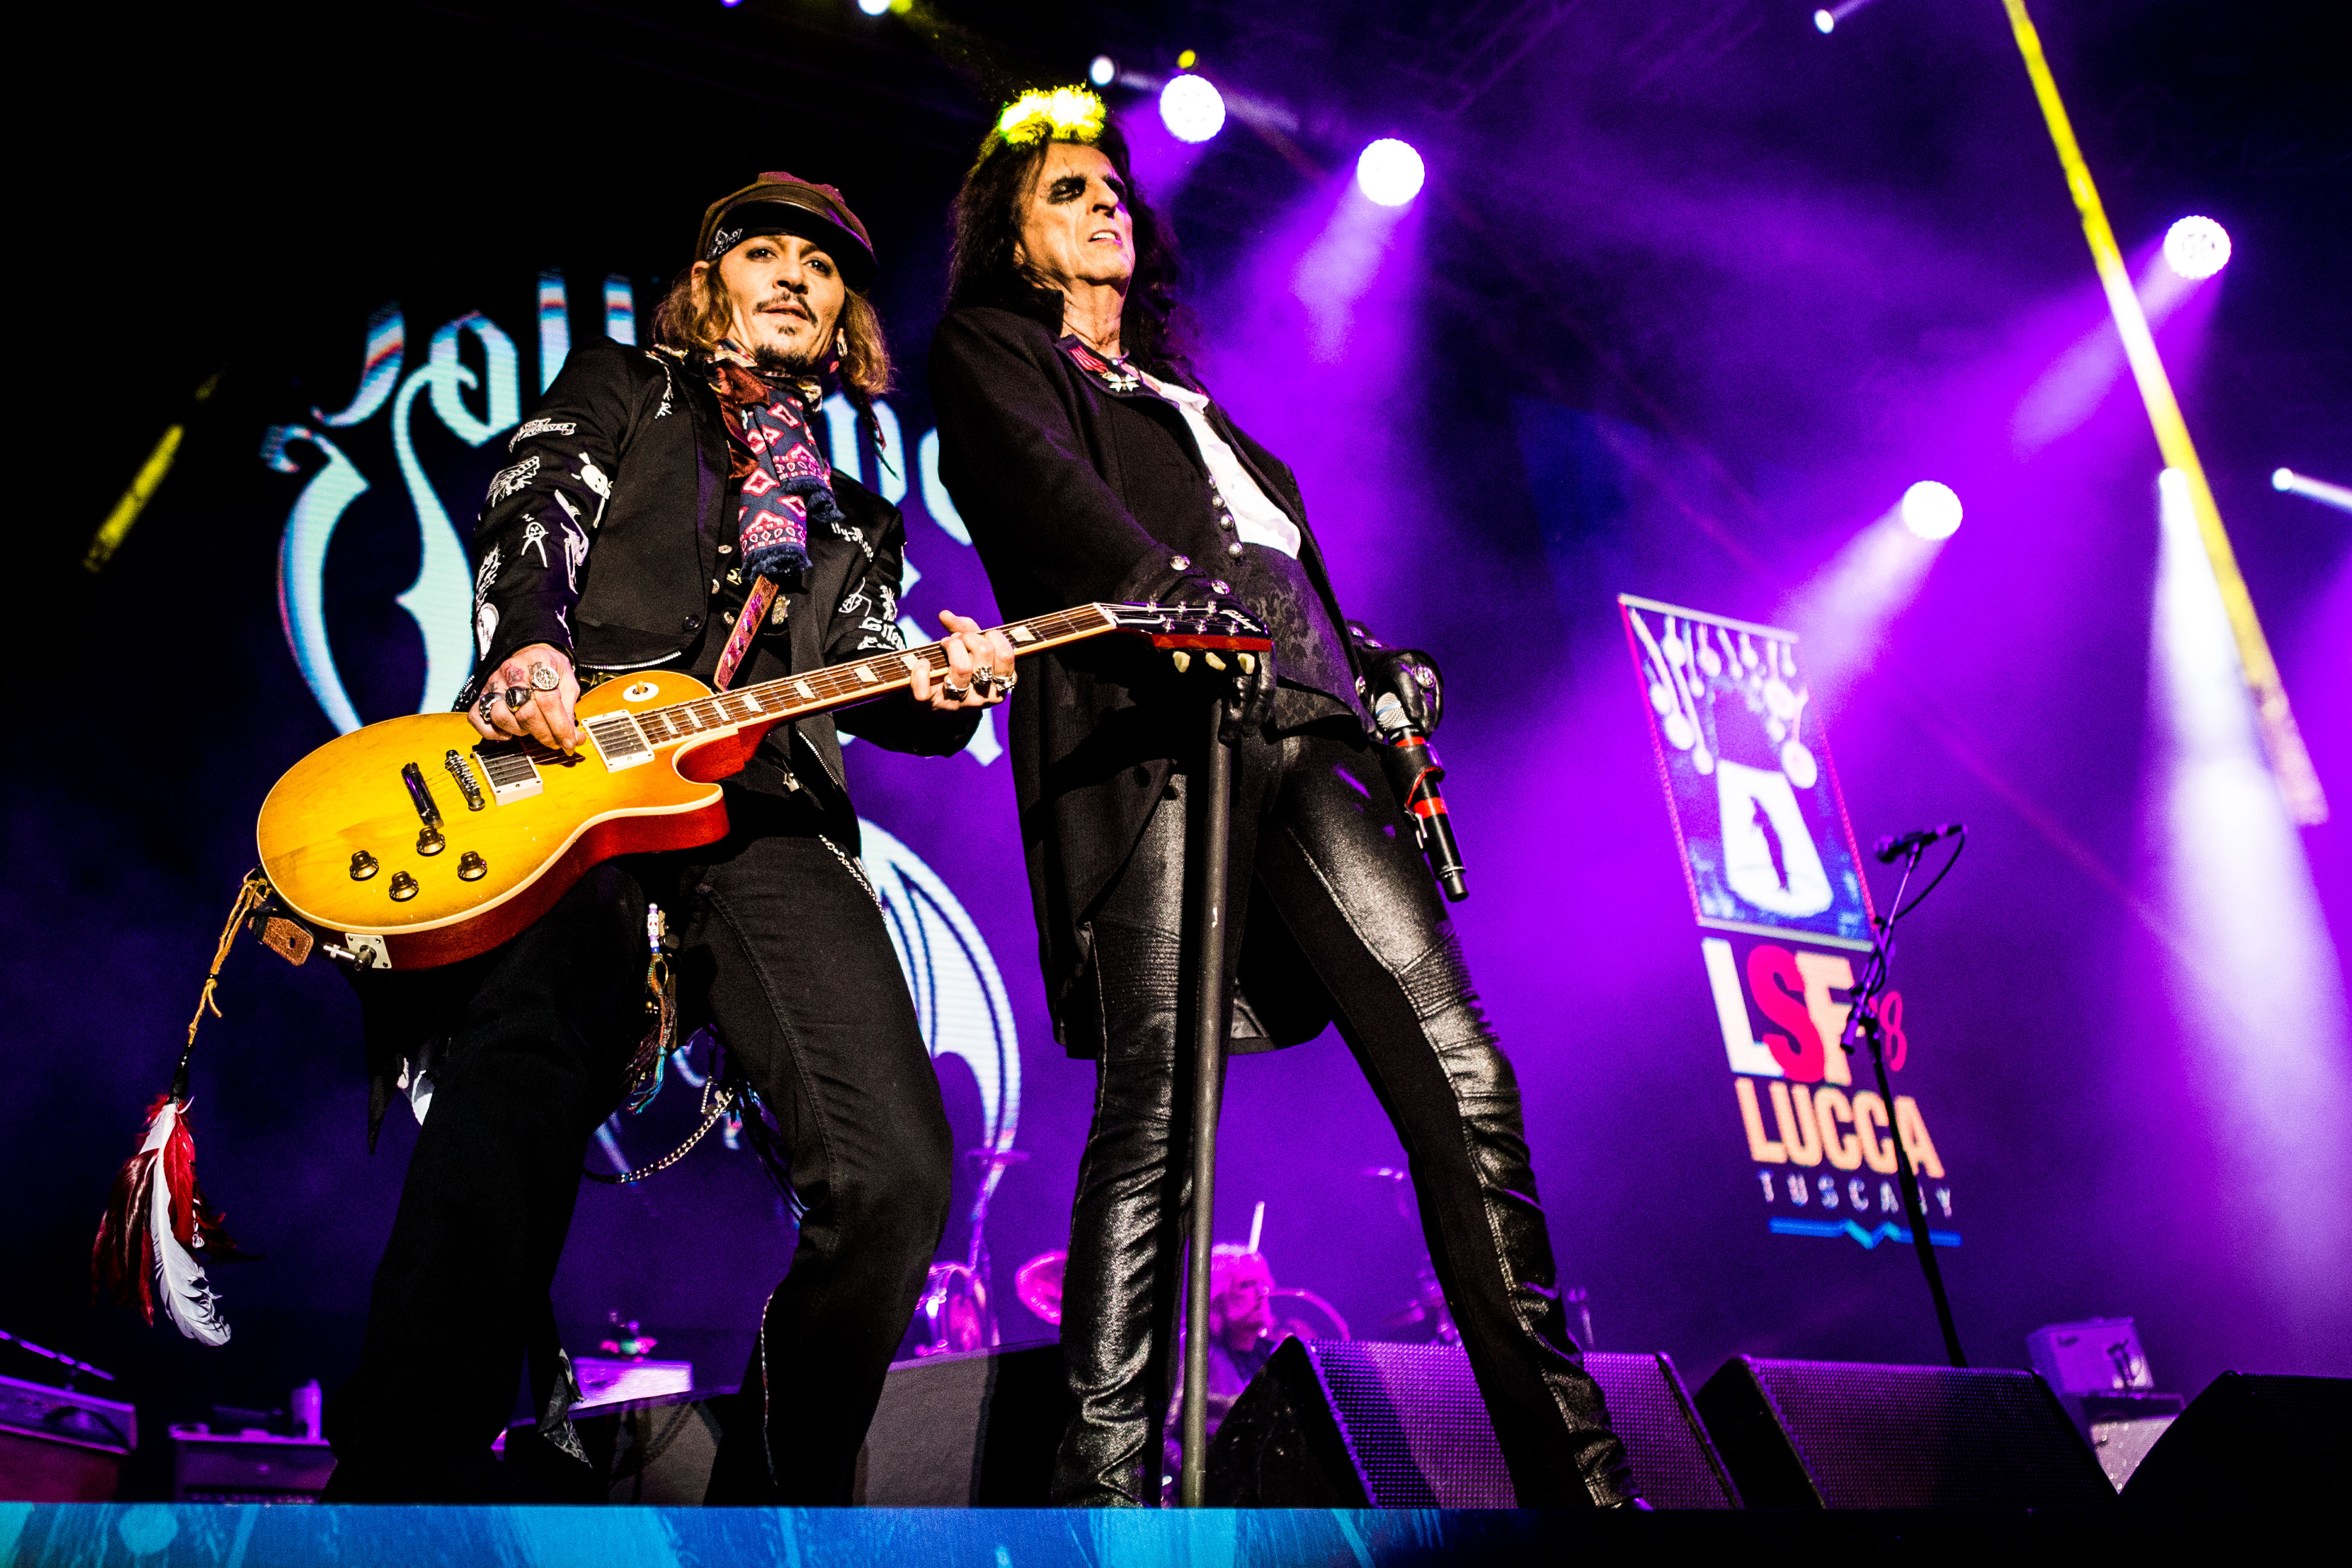 Hollywood Vampires - Alice Cooper, Johnny DeppHollywood Vampires in concert at the Lucca Summer Festival, Italy - 07 Jul 2018